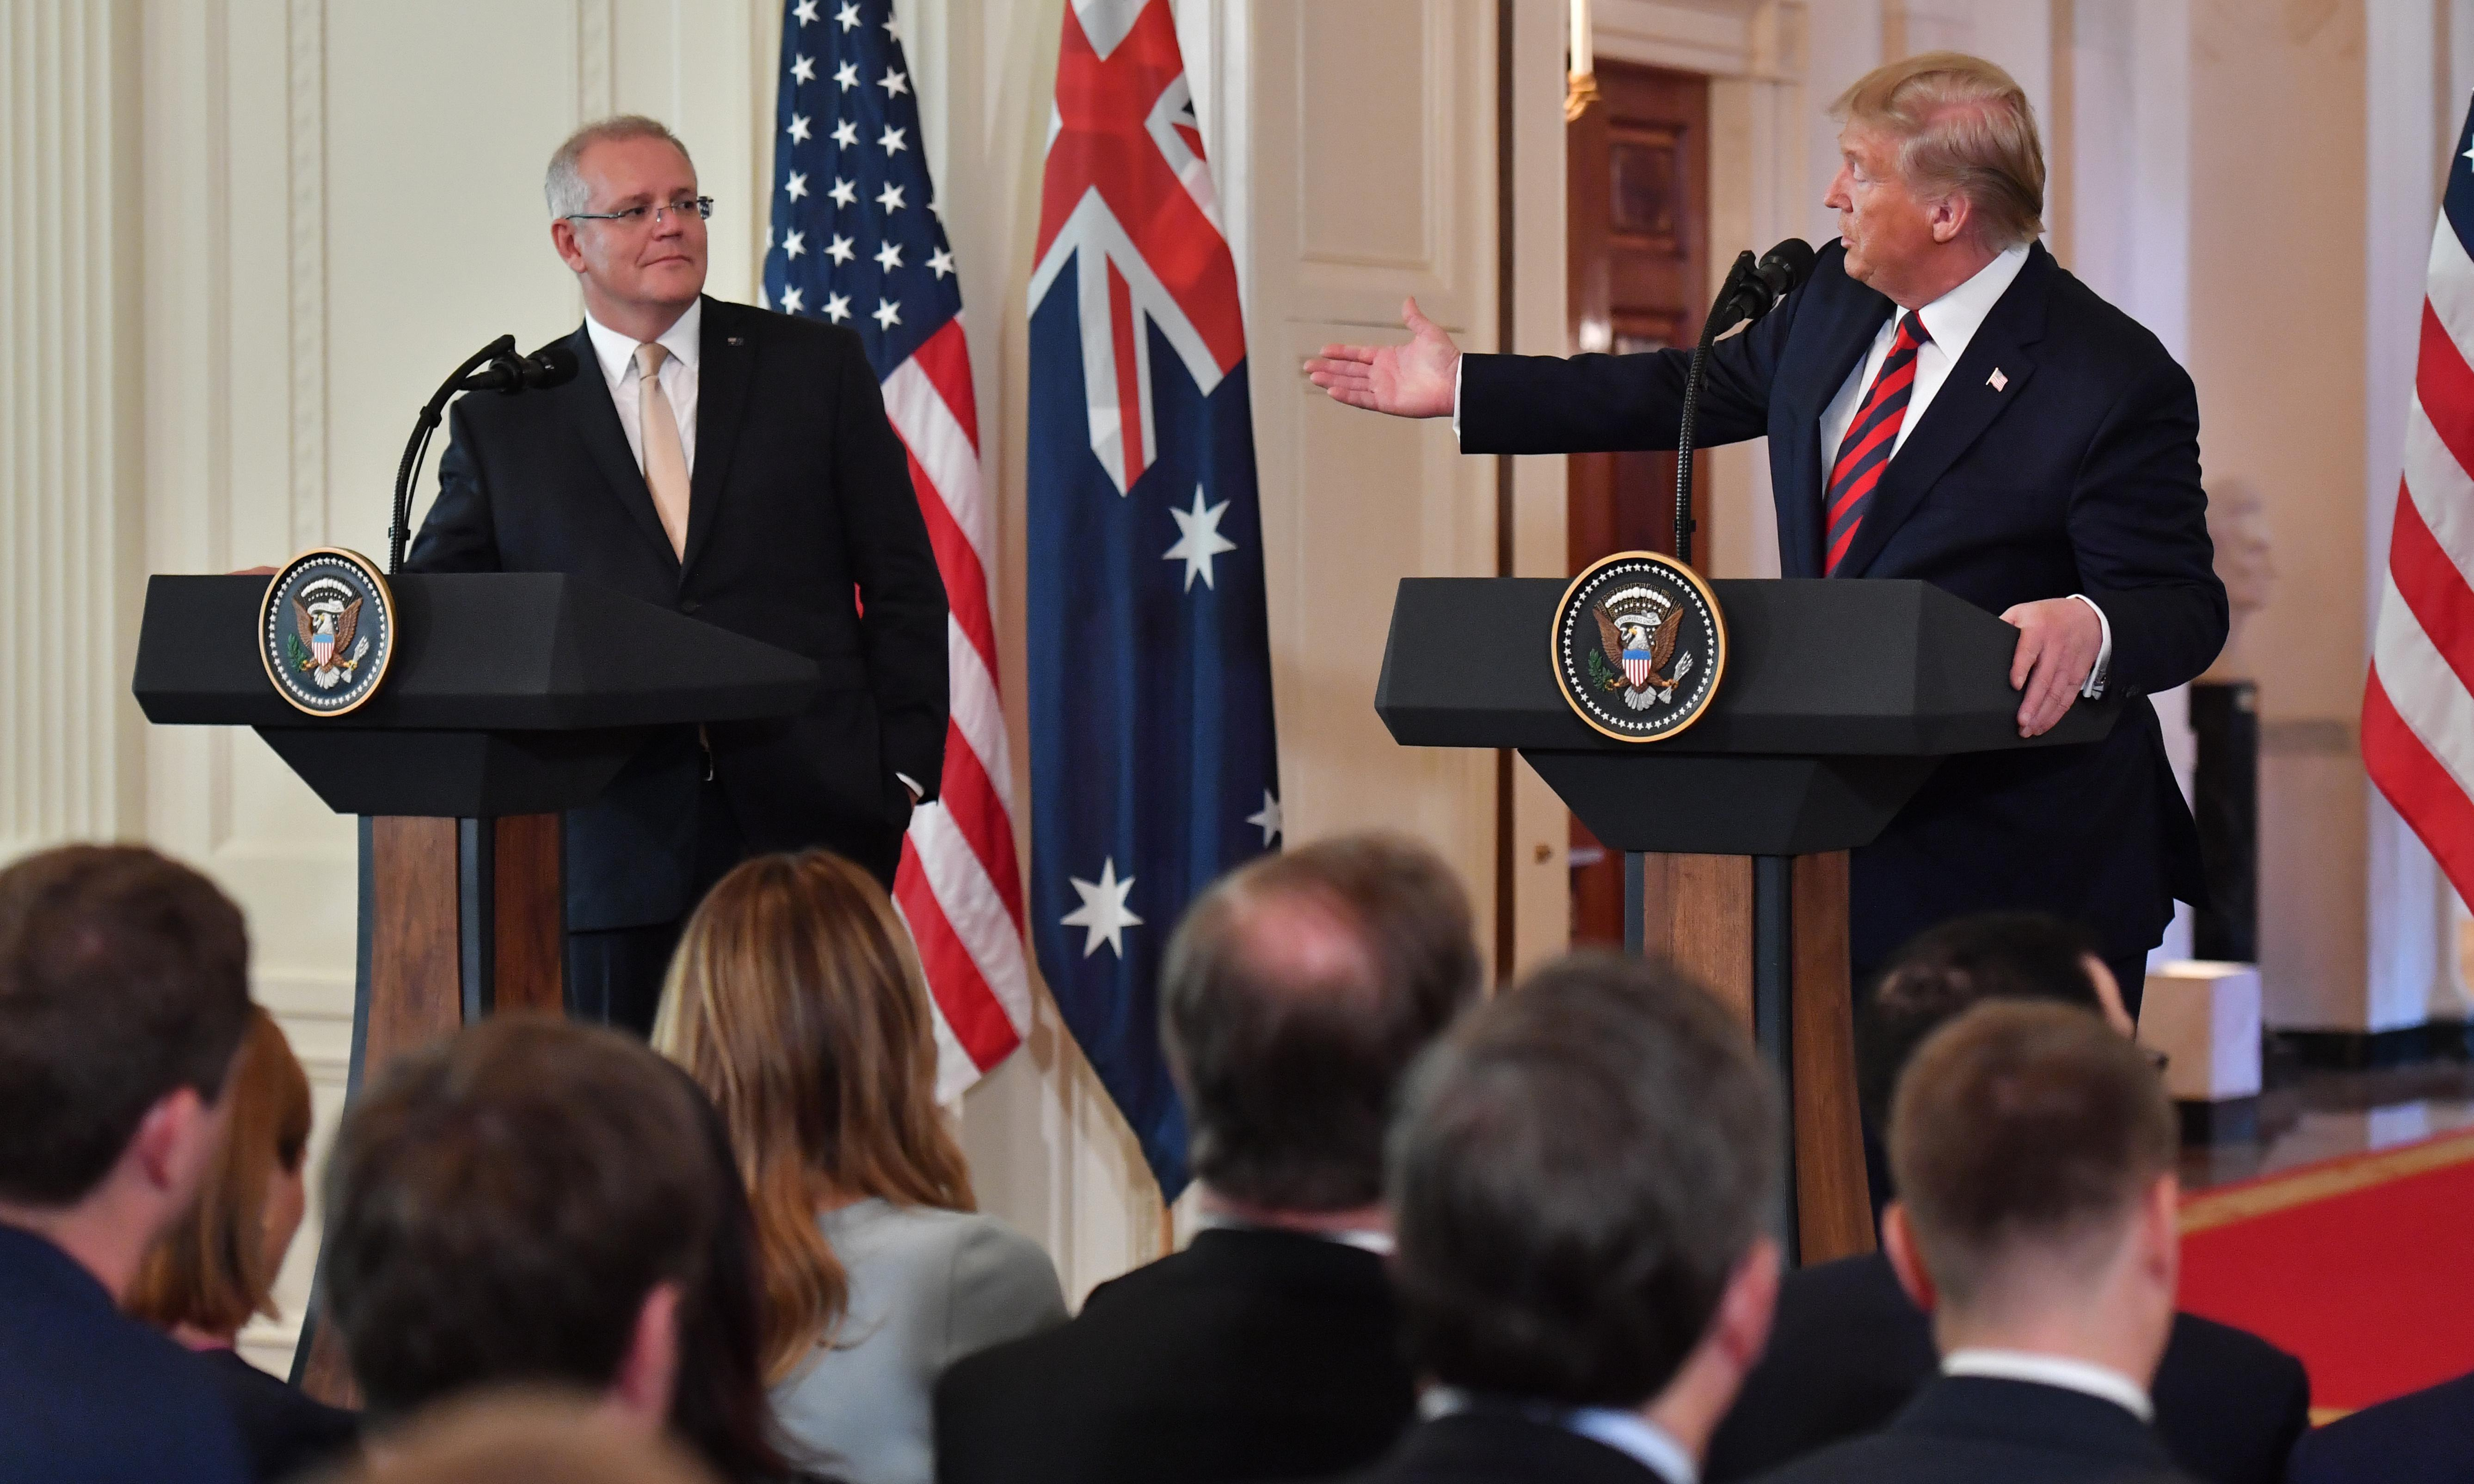 Scott Morrison scrambles to contain political mushroom cloud after Trump raises nuclear option with Iran